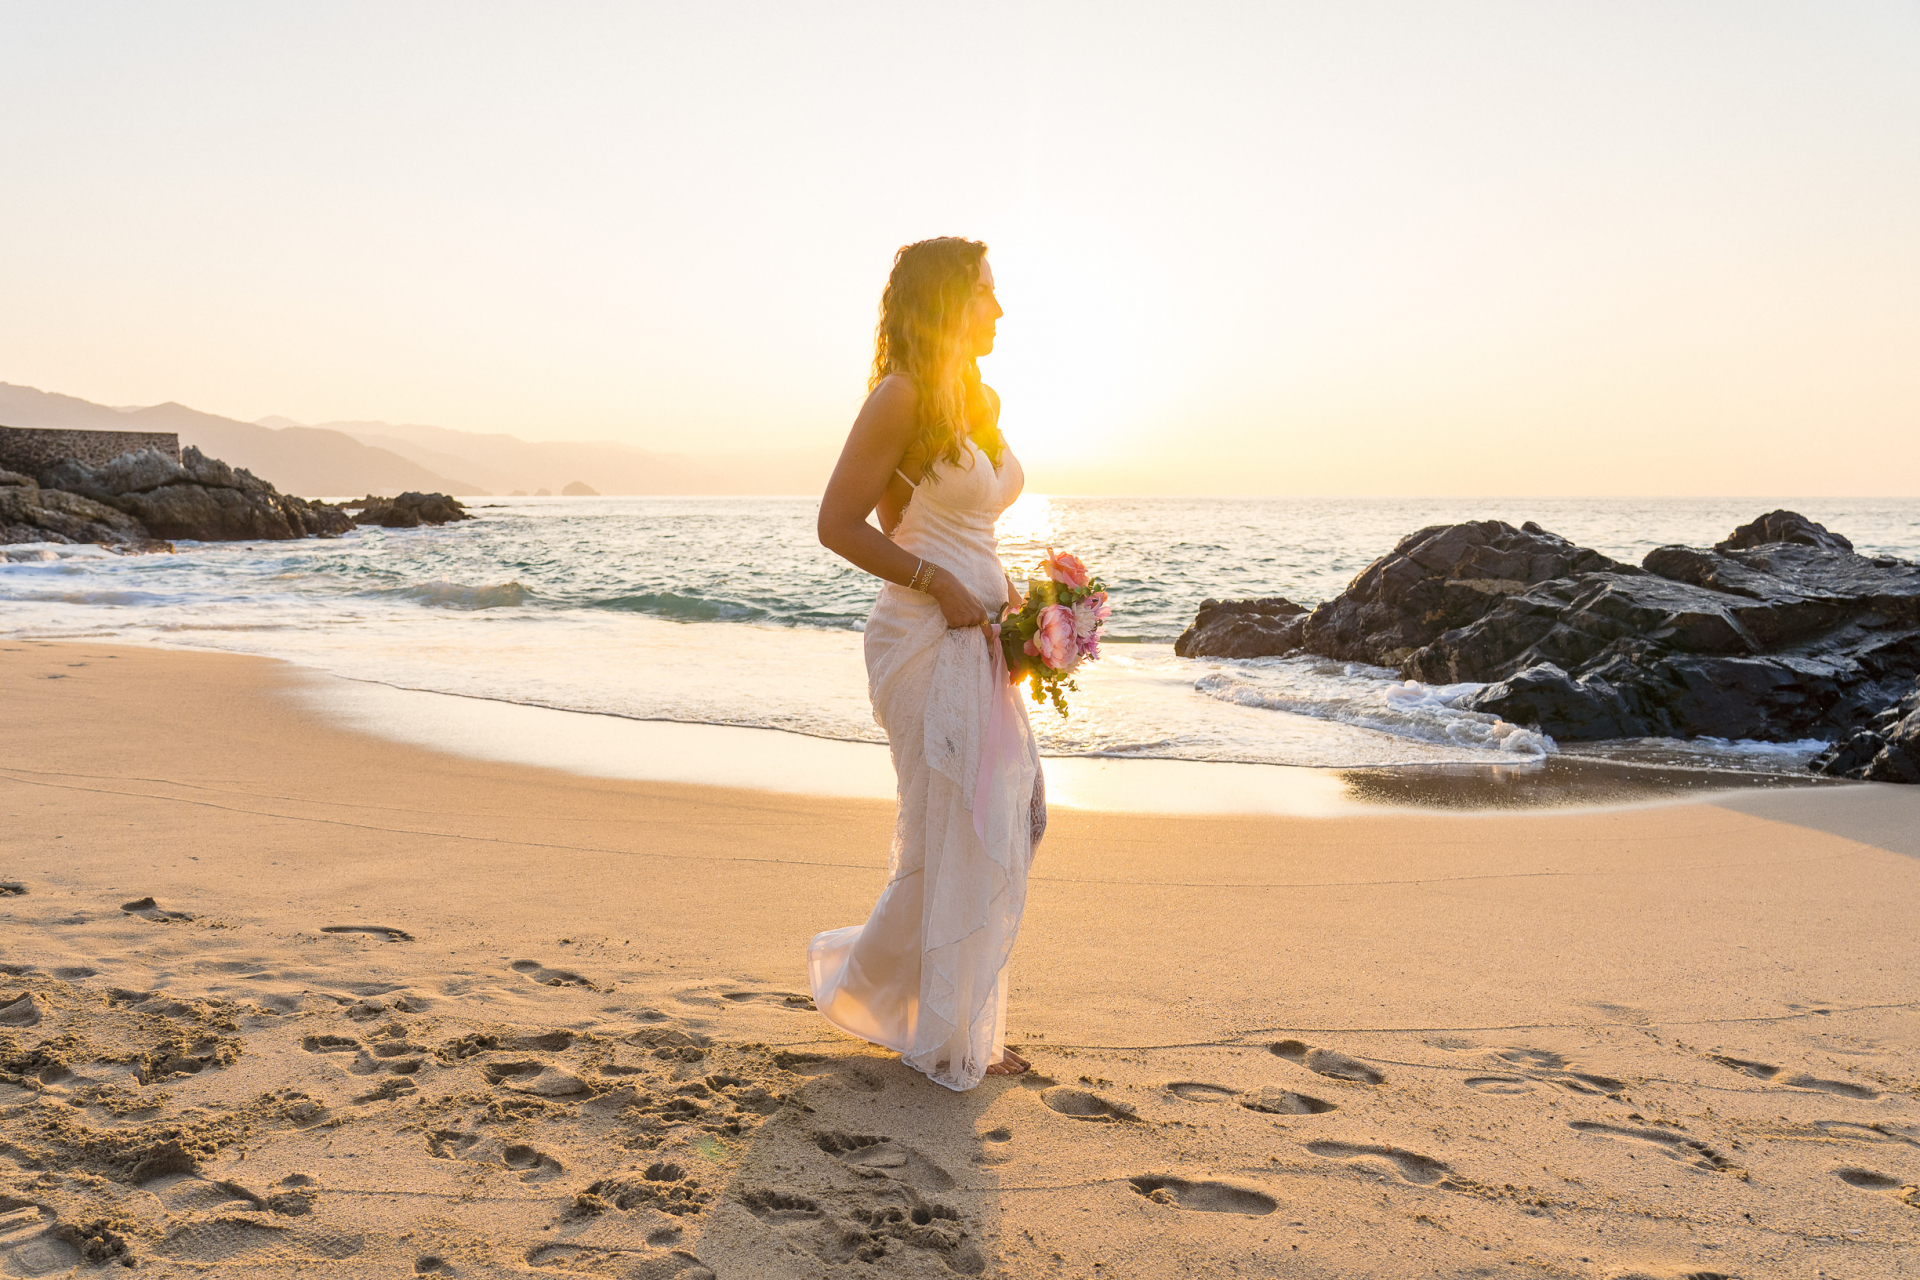 Puerto Vallarta Beach Elopement Bridal Image | The bride, surrounded by sunlight and waves crashing on rocks, walks along the beach